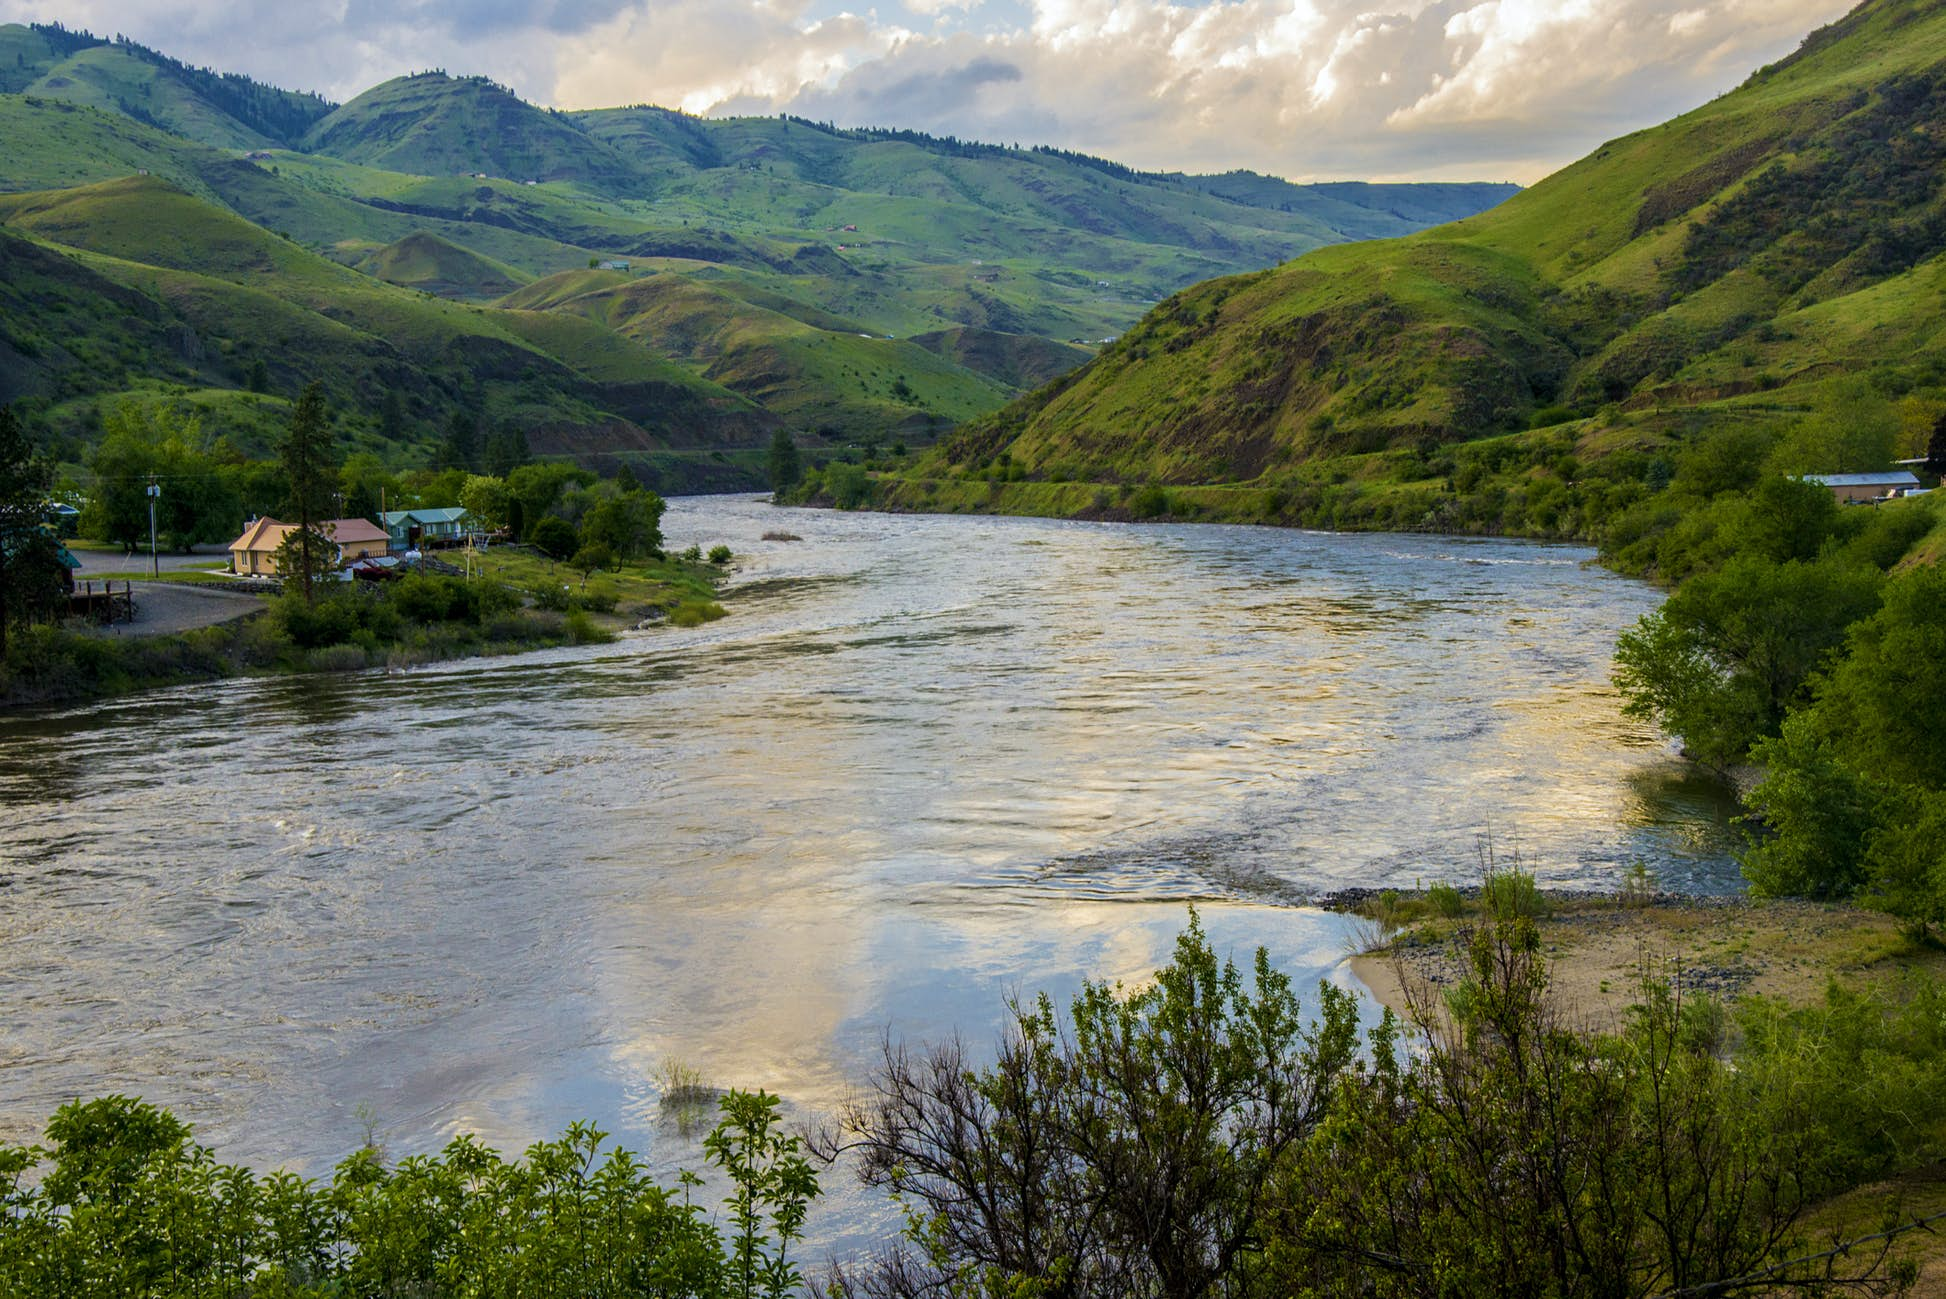 Enjoy some wilderness with your water sports on the Salmon River © Danita Delimont / Getty Images